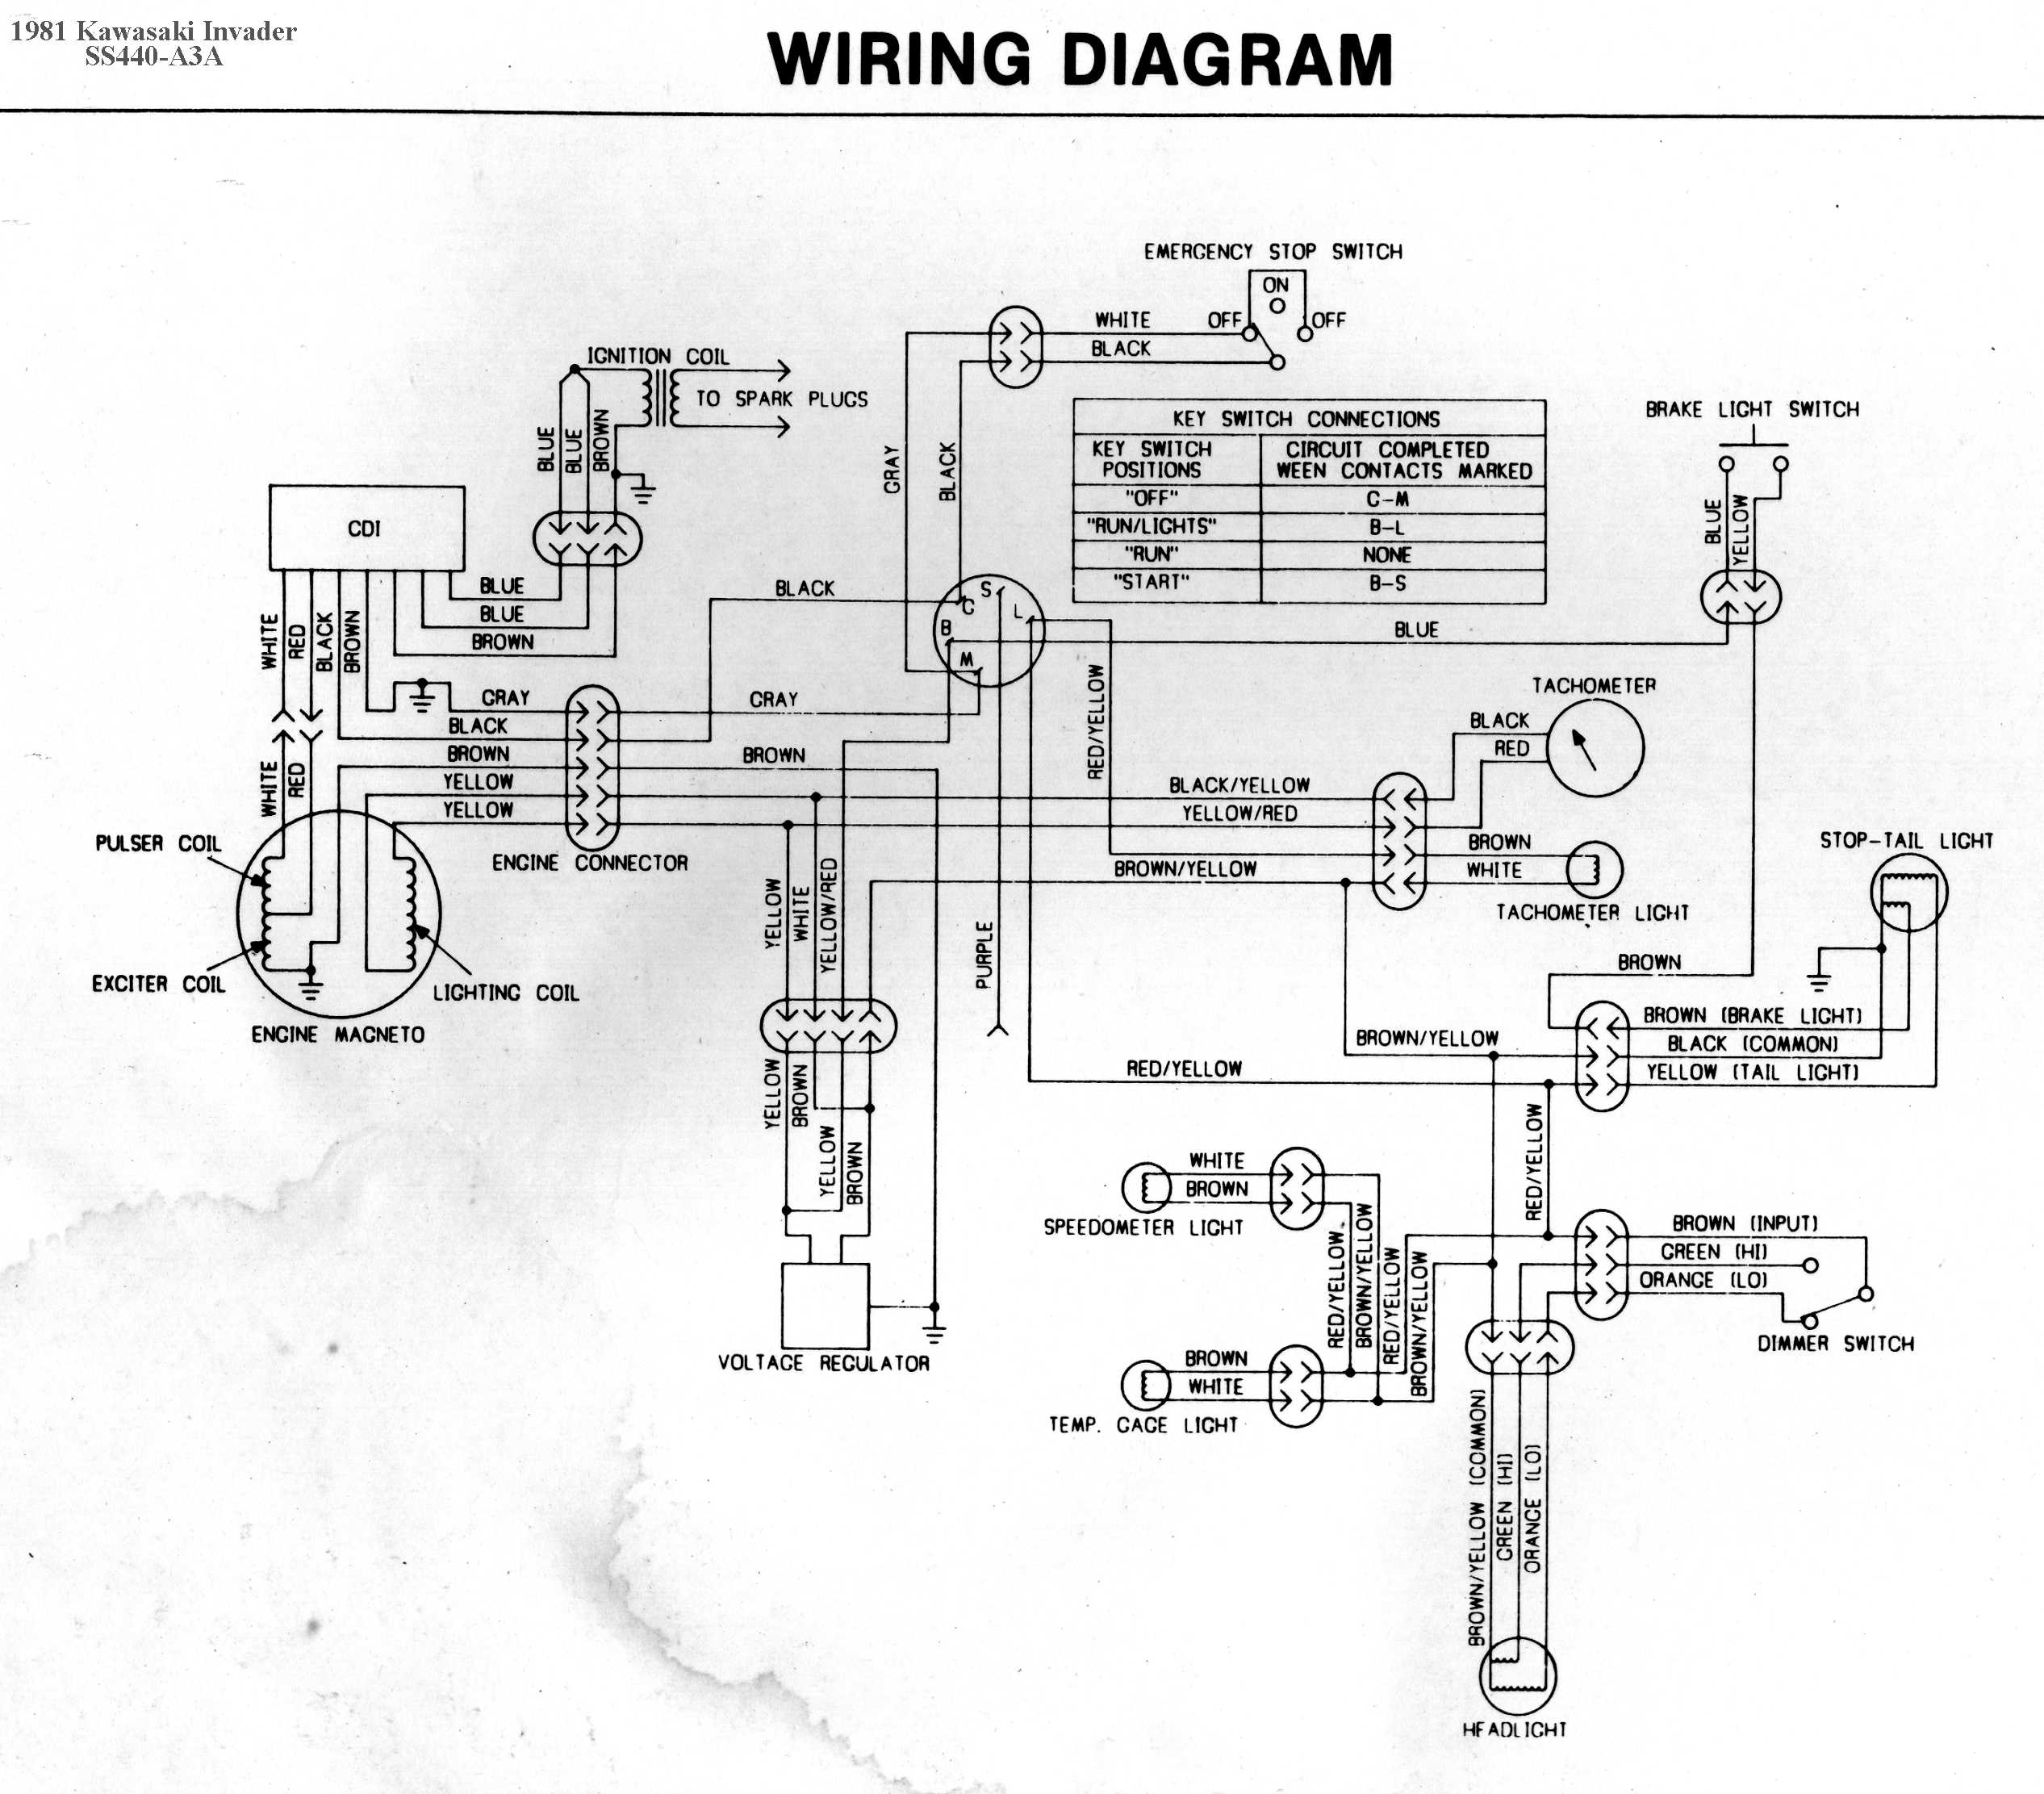 Kawasaki Invader Wiring Diagram Great Design Of Yamaha 300 Schematics Diagrams U2022 Rh Parntesis Co Klf Bayou 220